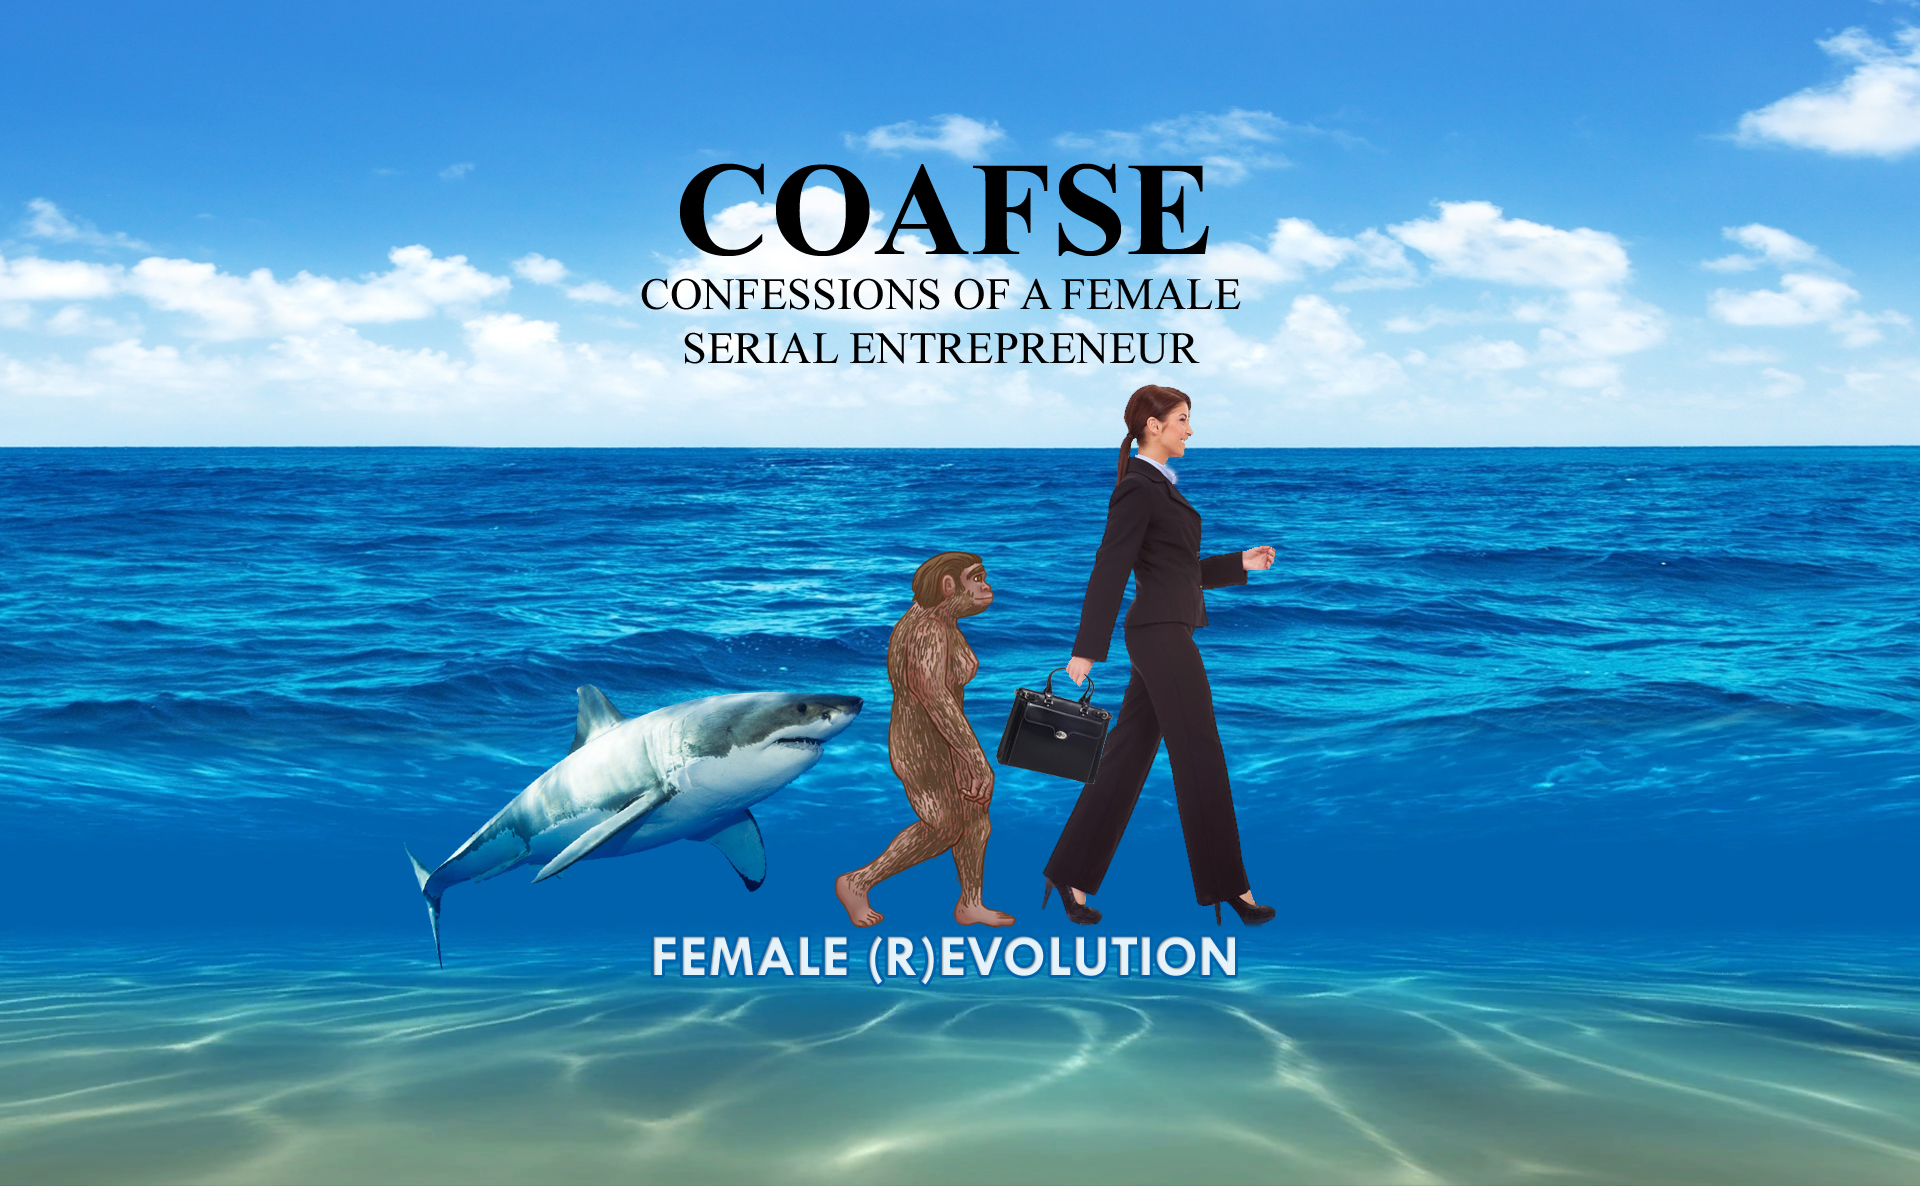 COAFSE: life & workplace hacks for working women